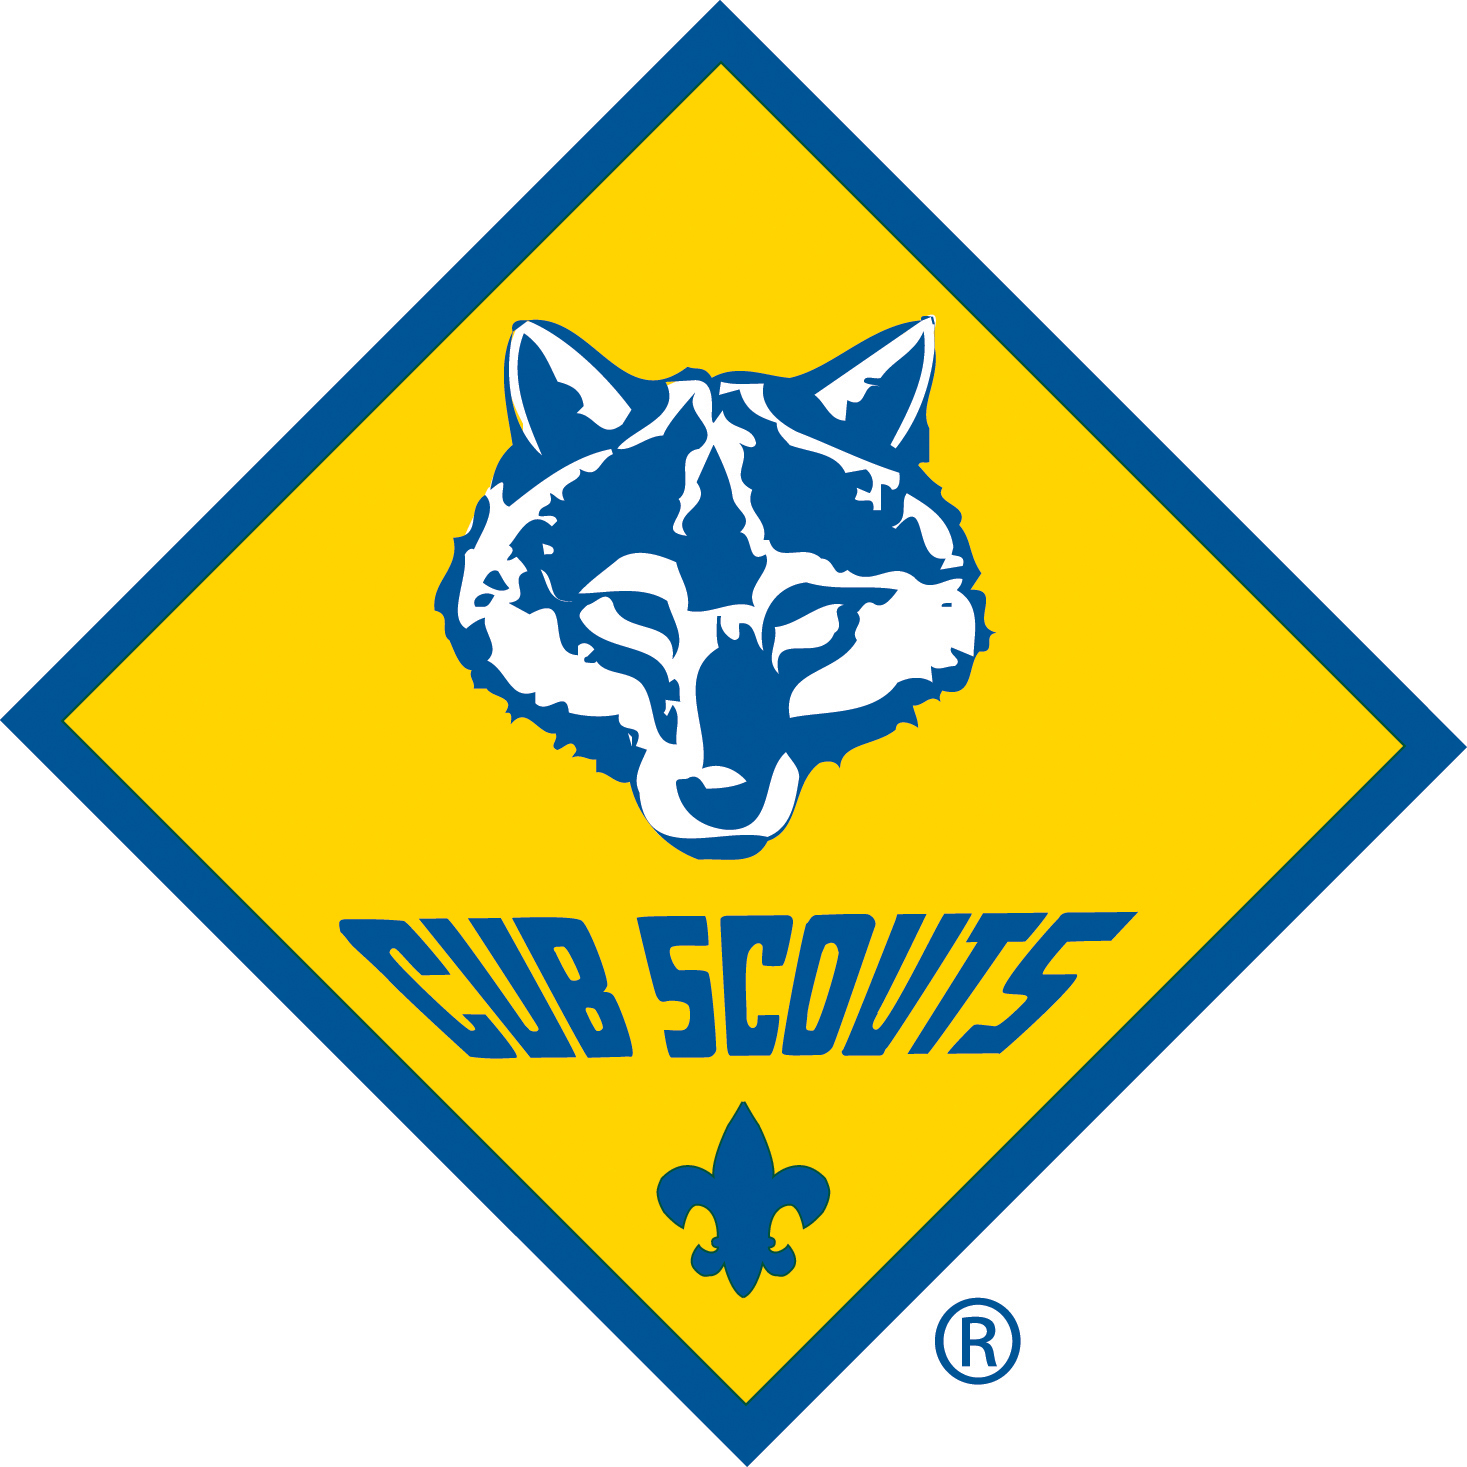 https://i0.wp.com/www.scouting.org/filestore/marketing/logos/Cub%20Scout/CubScout_4K.jpg